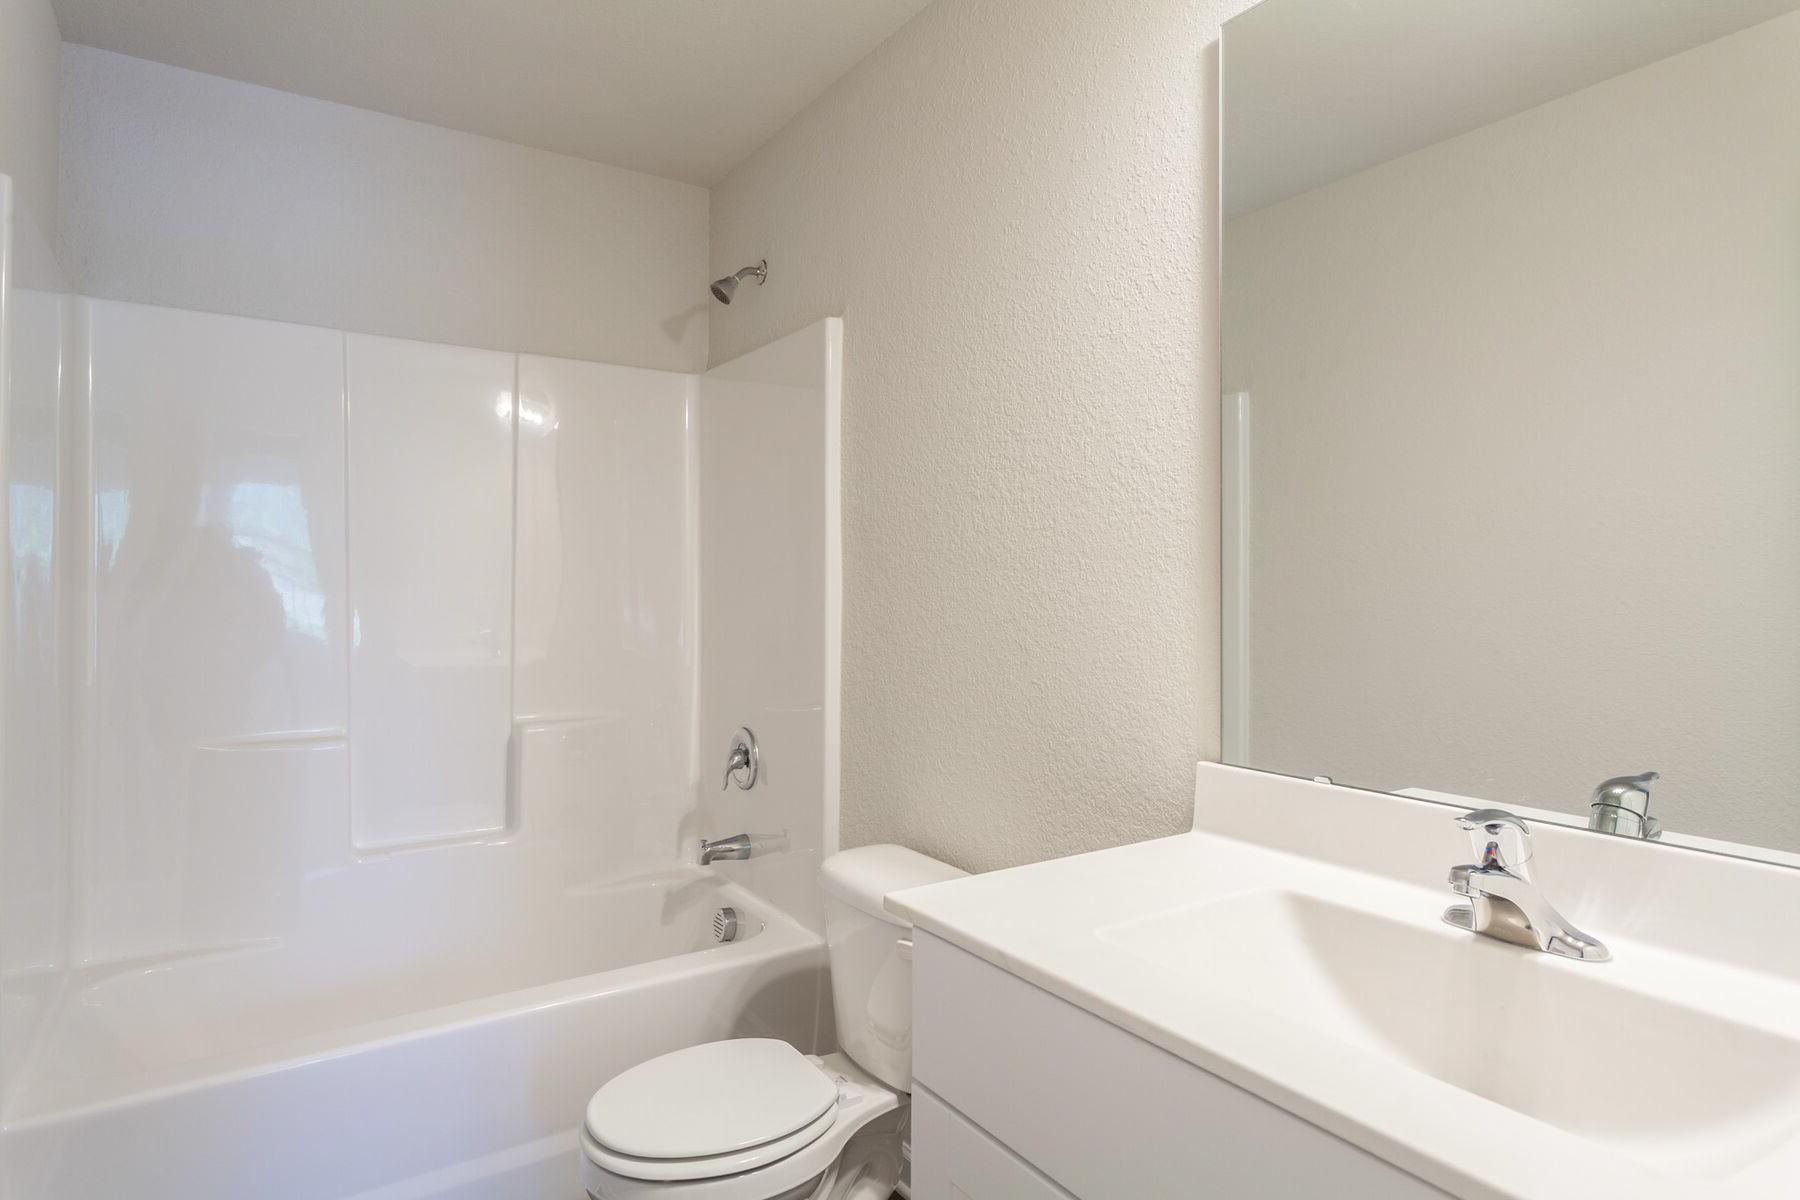 Bathroom featured in the Alexander By LGI Homes in Columbia, SC